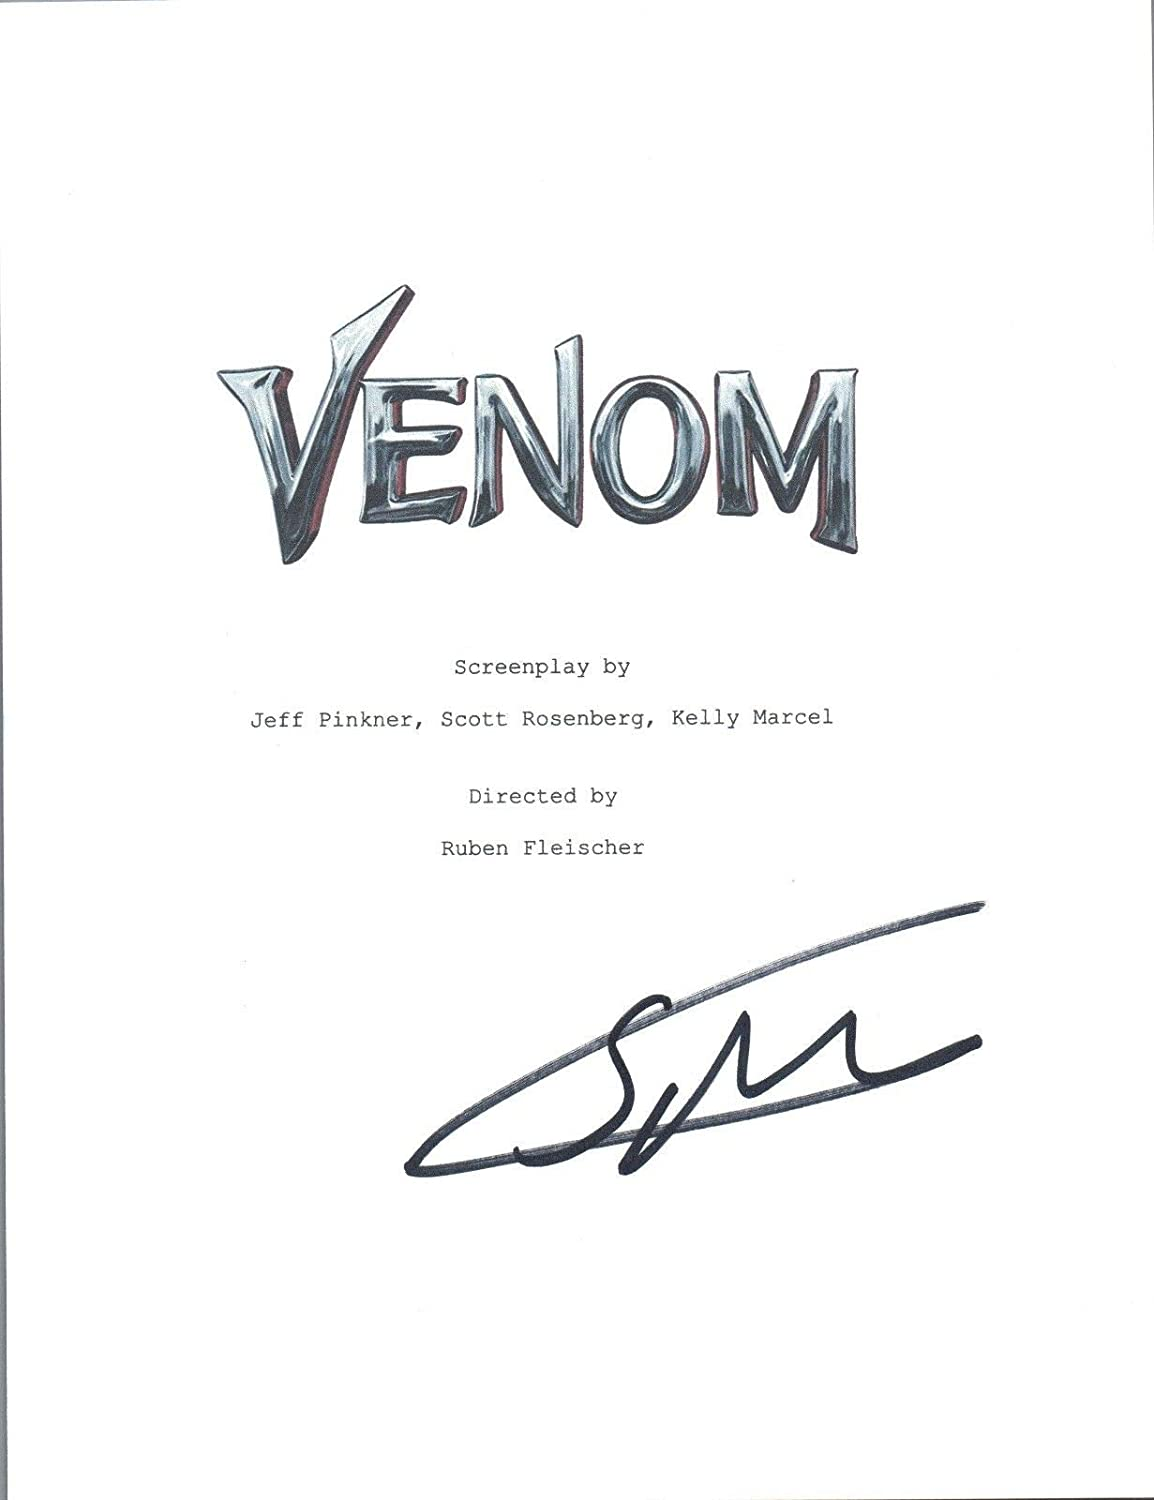 Scott Rosenberg Signed Autographed VENOM Movie Script Cover Screenwriter COA Unbranded